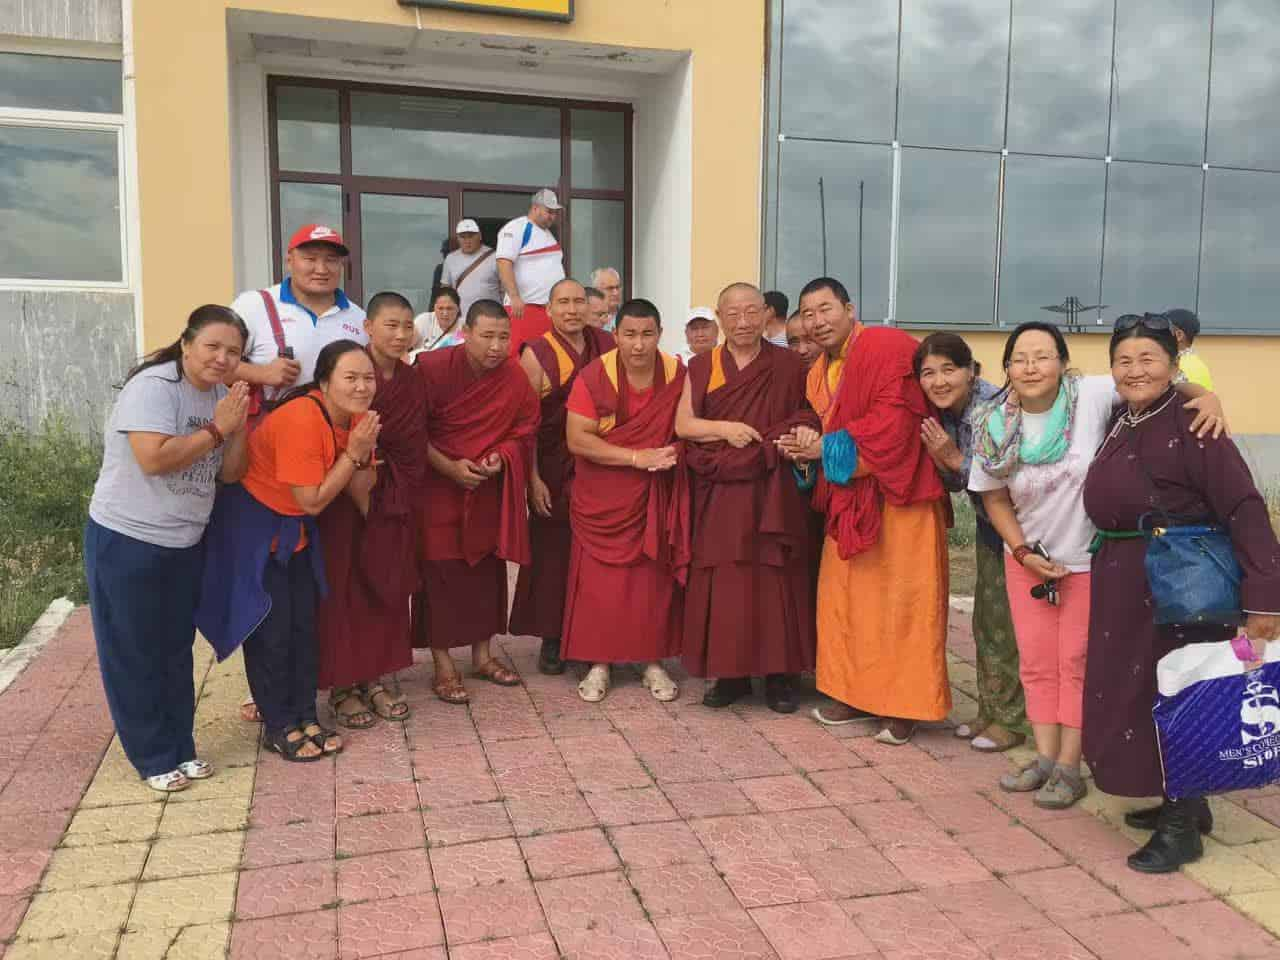 gosok-rinpoche-mongolia-2016-1f99ffad00007597d9385b0be2a9cfd